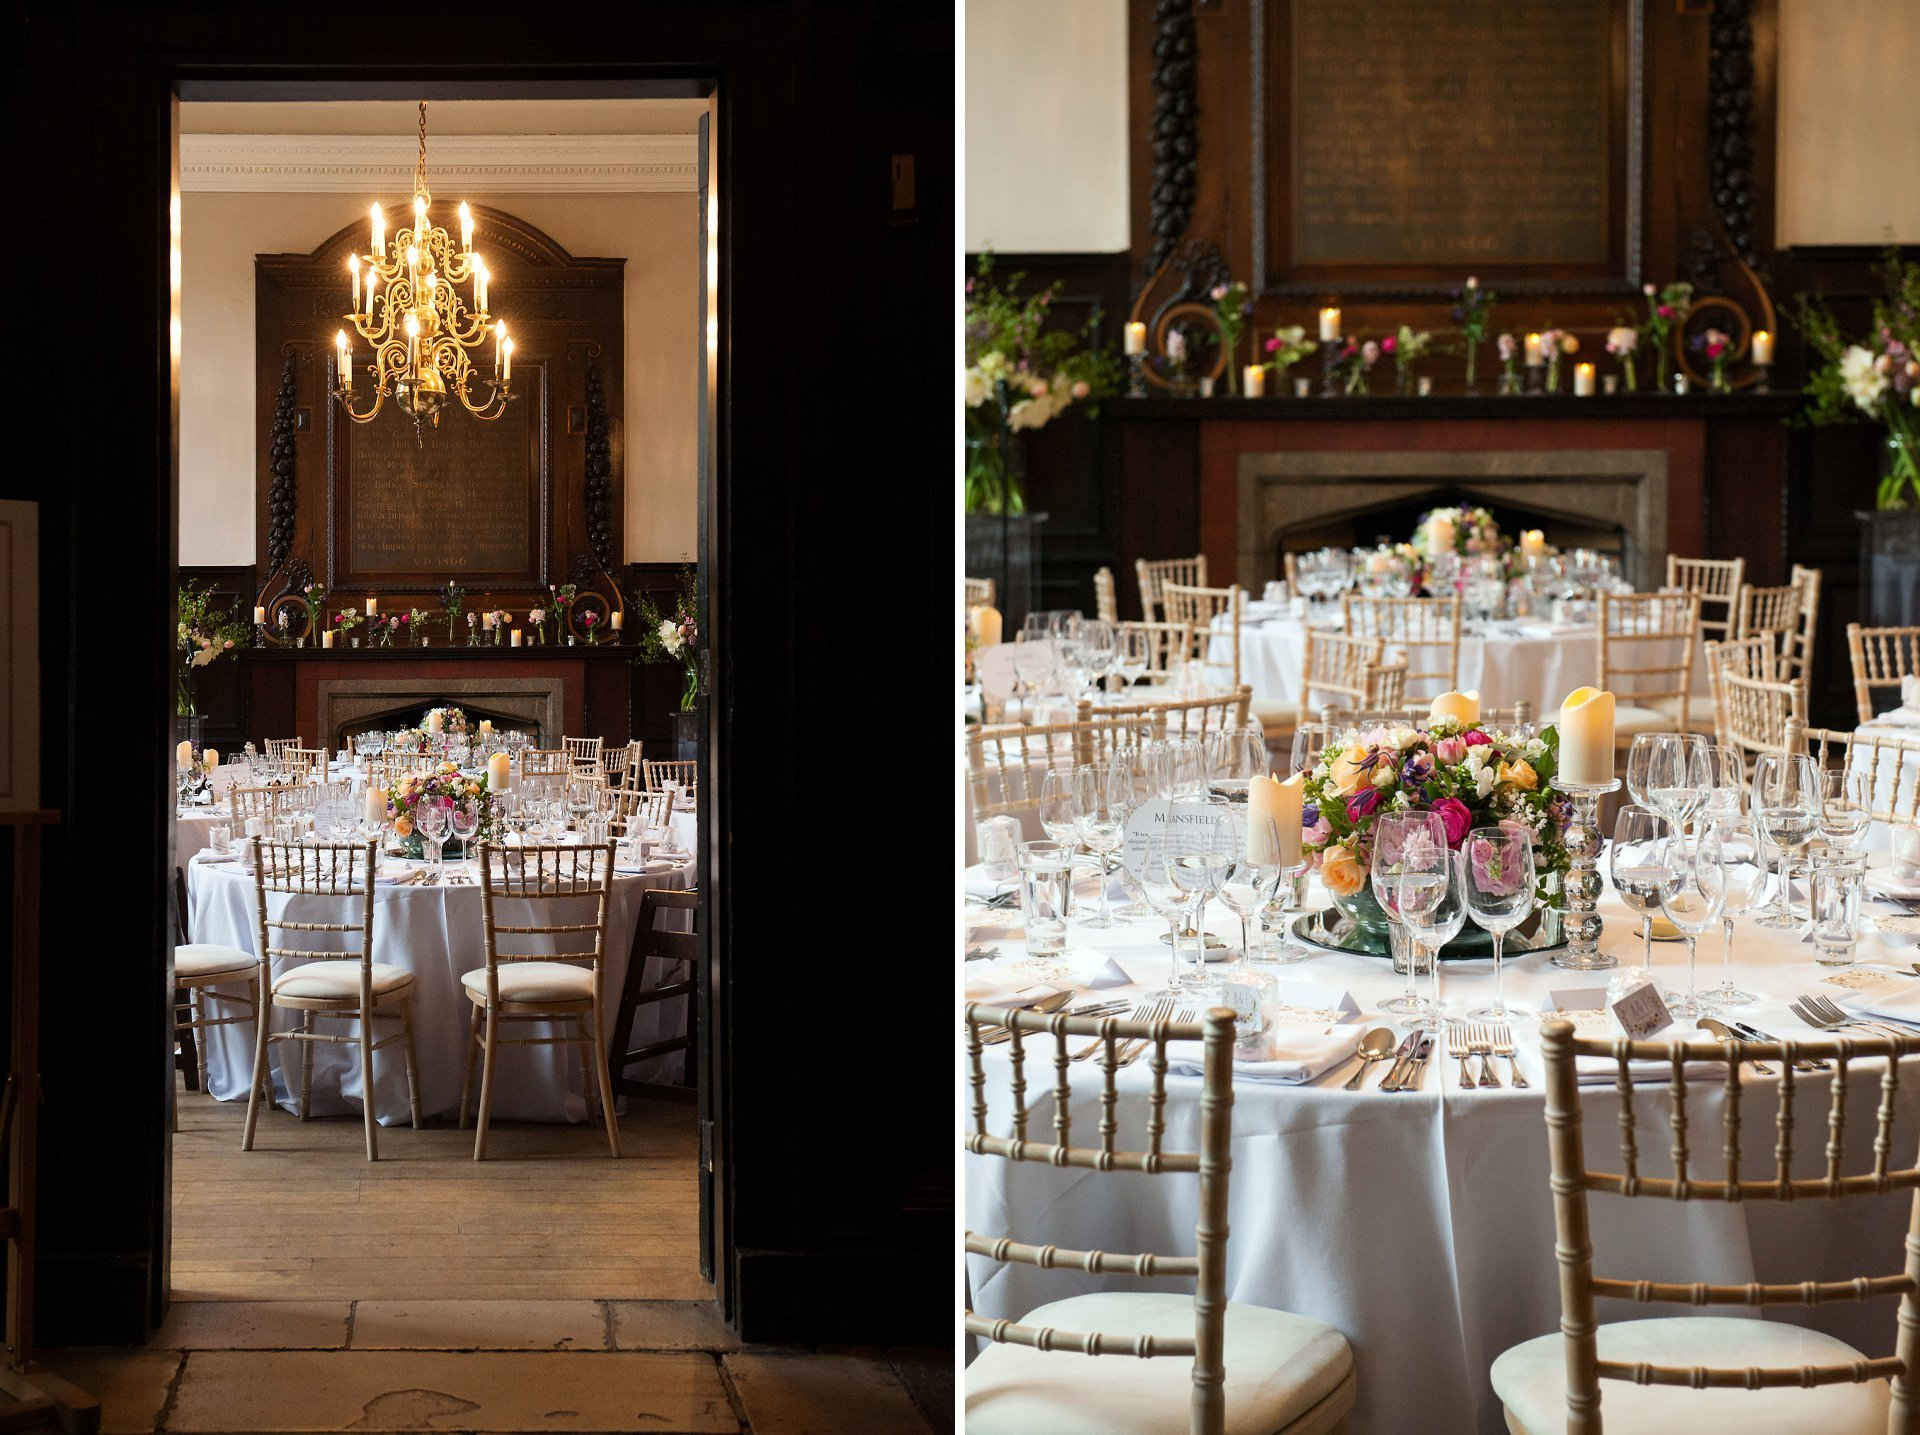 The stunning Great Hall at Fulham Palace laid for a wedding breakfast